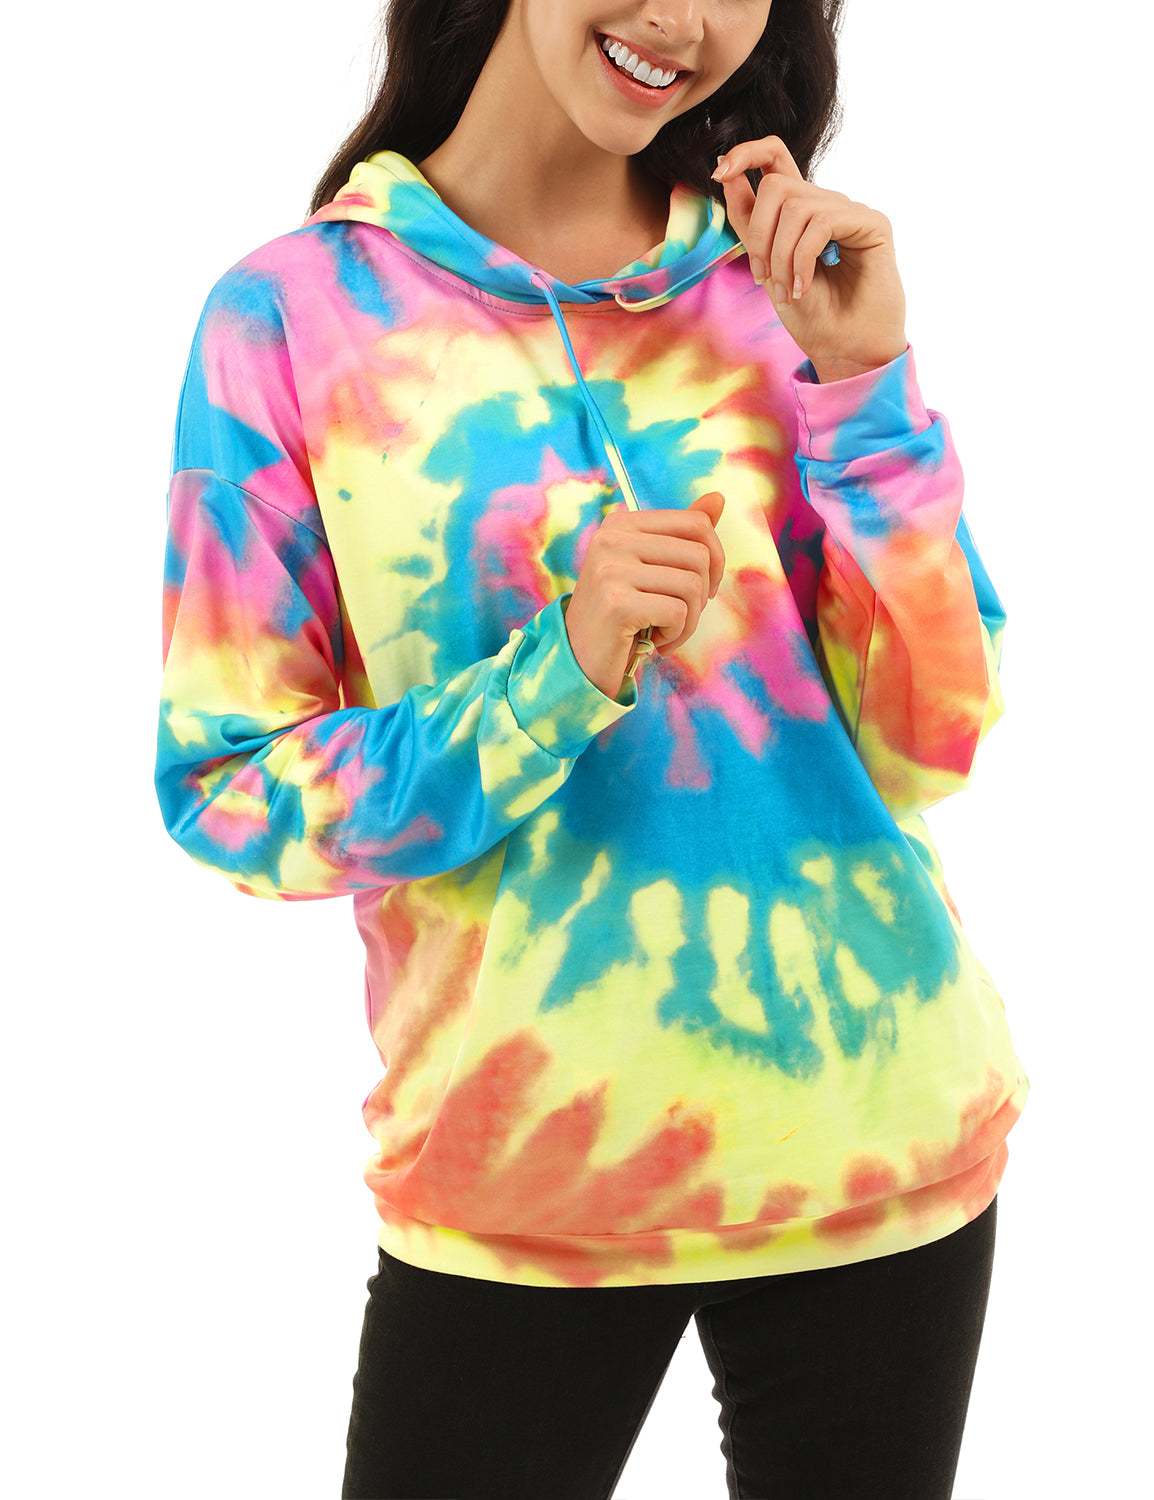 Blooming Jelly_Cool Heart Spiral Tie Dye Hoodie_Multi-colors Tie Dyed_302017_21_Cool Girl Street Wear_Tops_Hoodie